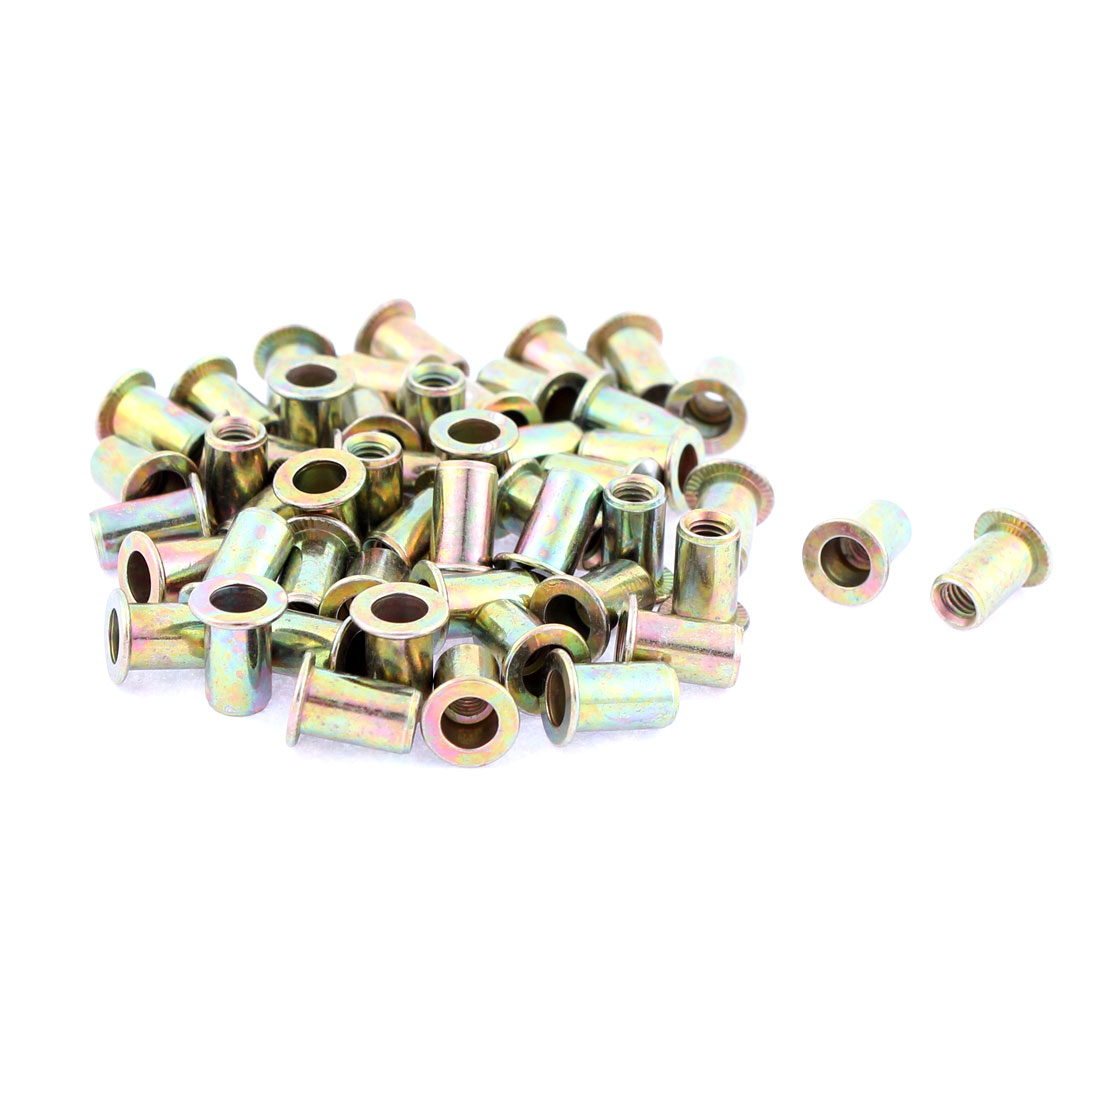 M4 Thread Dia Flat Head Zinc Plated Rivet Blind Nut Nutsert Brass Tone 50pcs